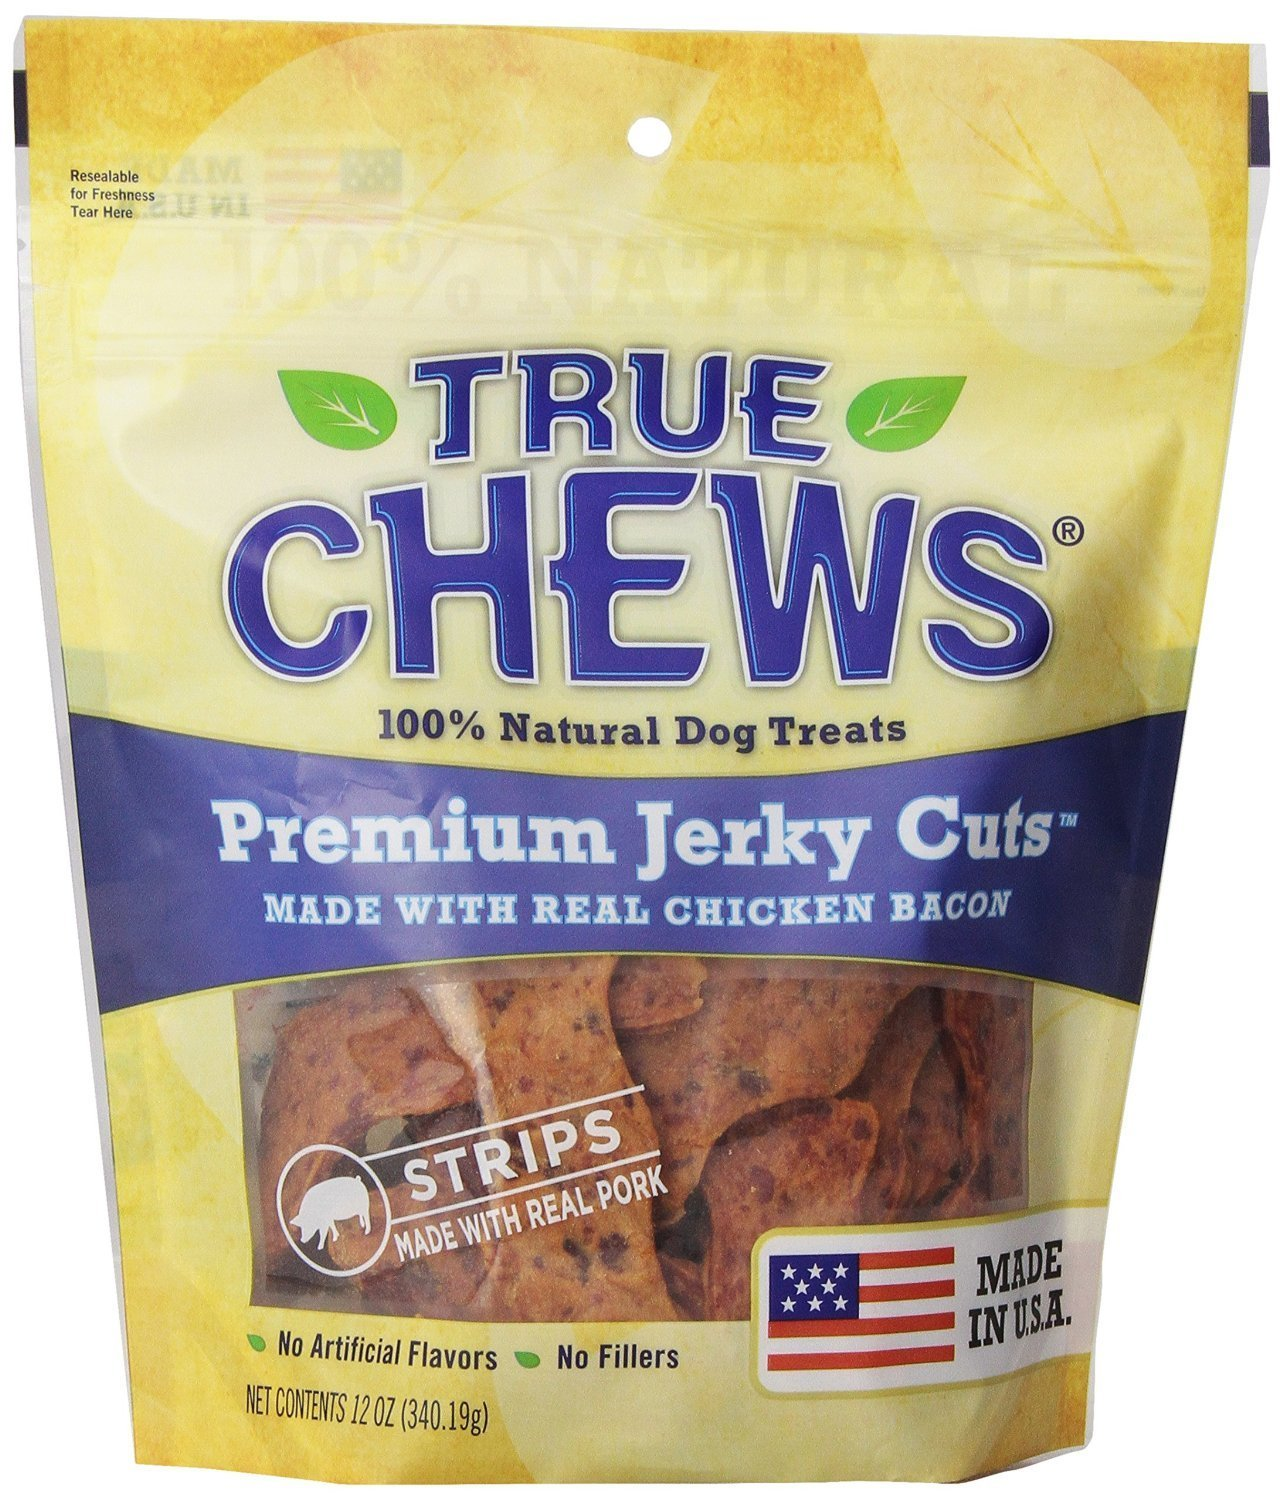 Tyson True Chews Chicken Bacon Premium Sizzlers Pack of 2